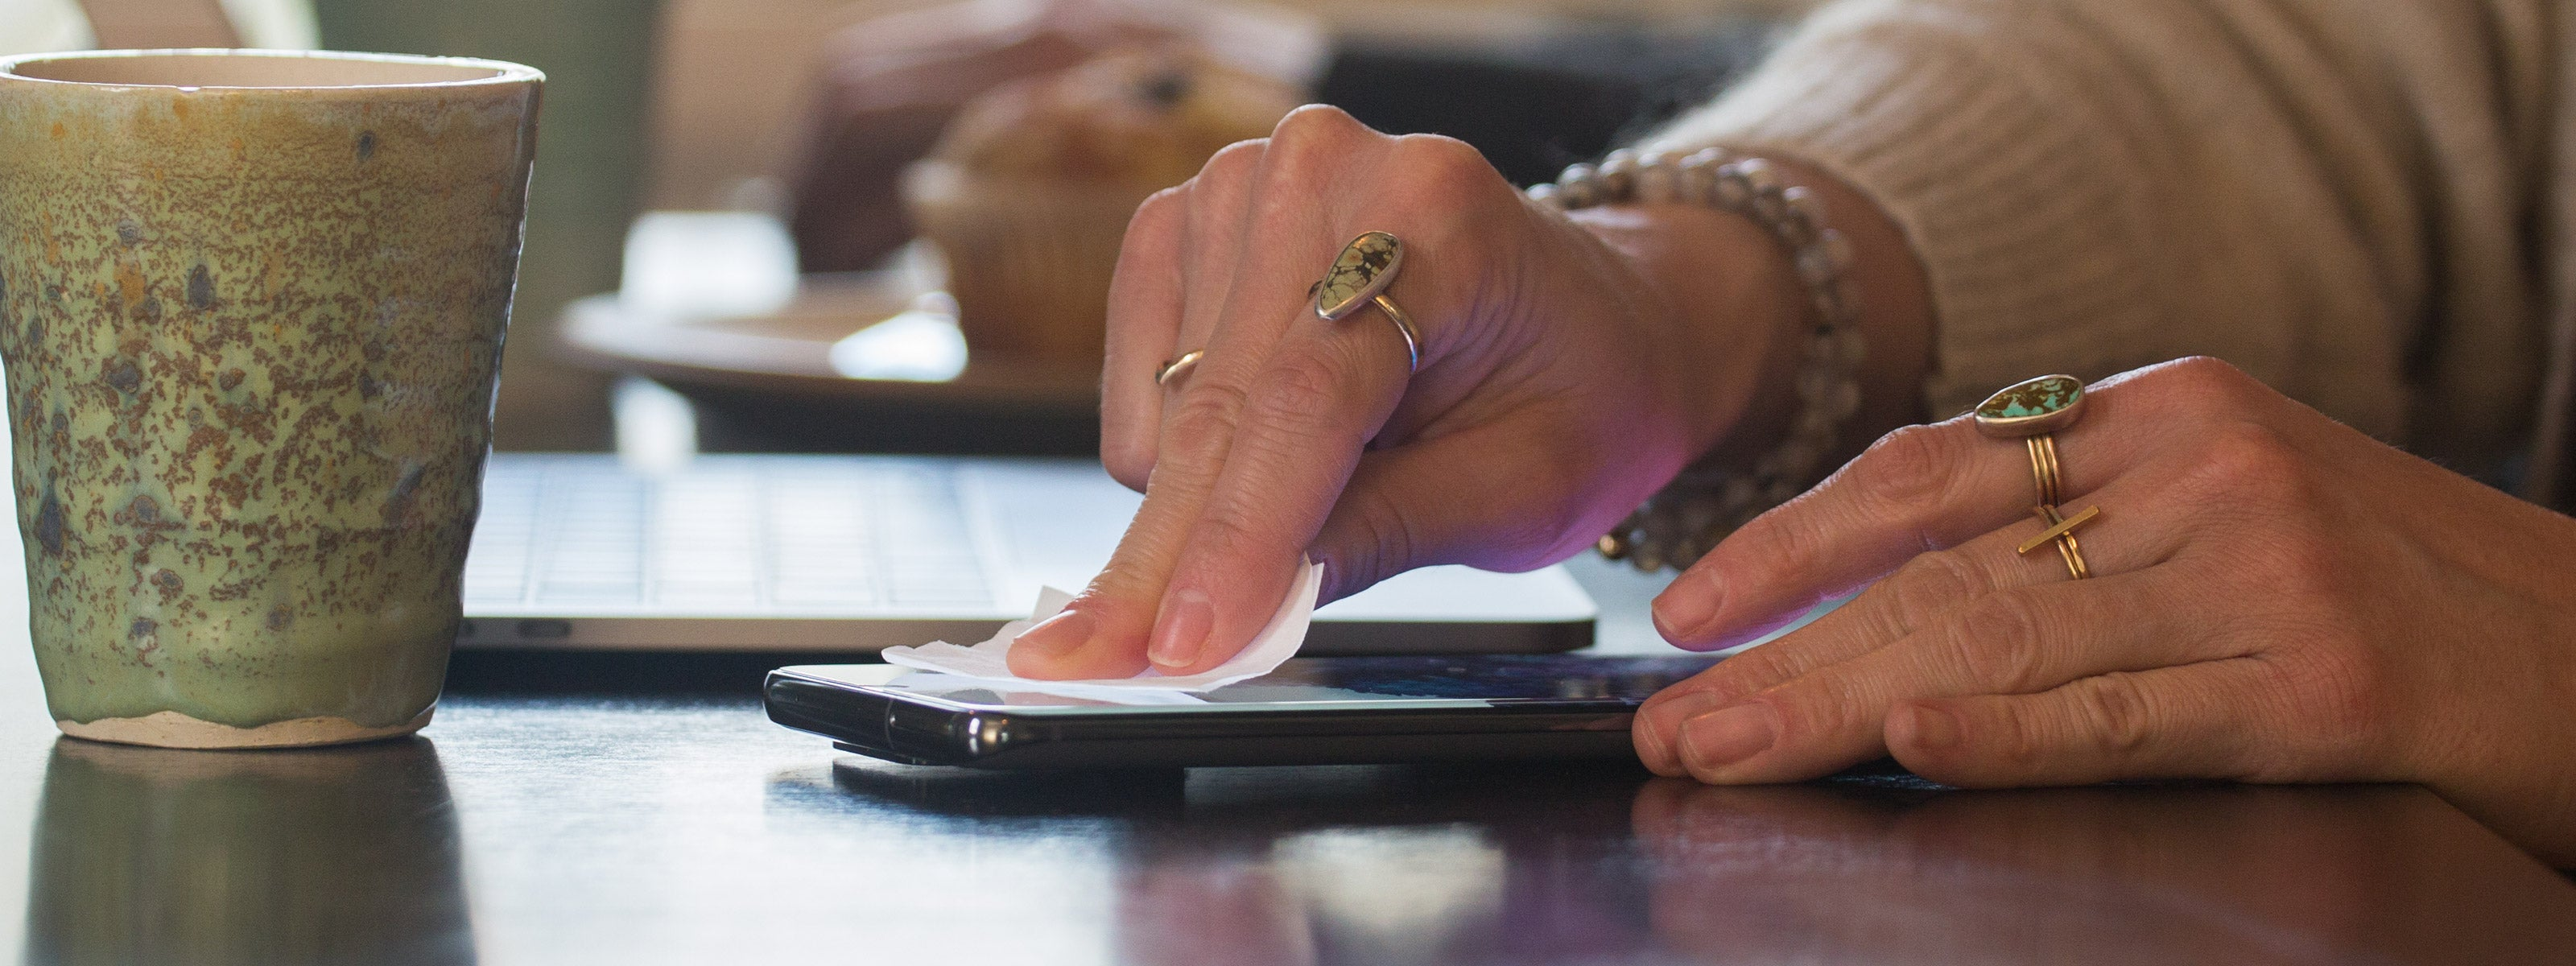 woman in a cafe wiping down her phone